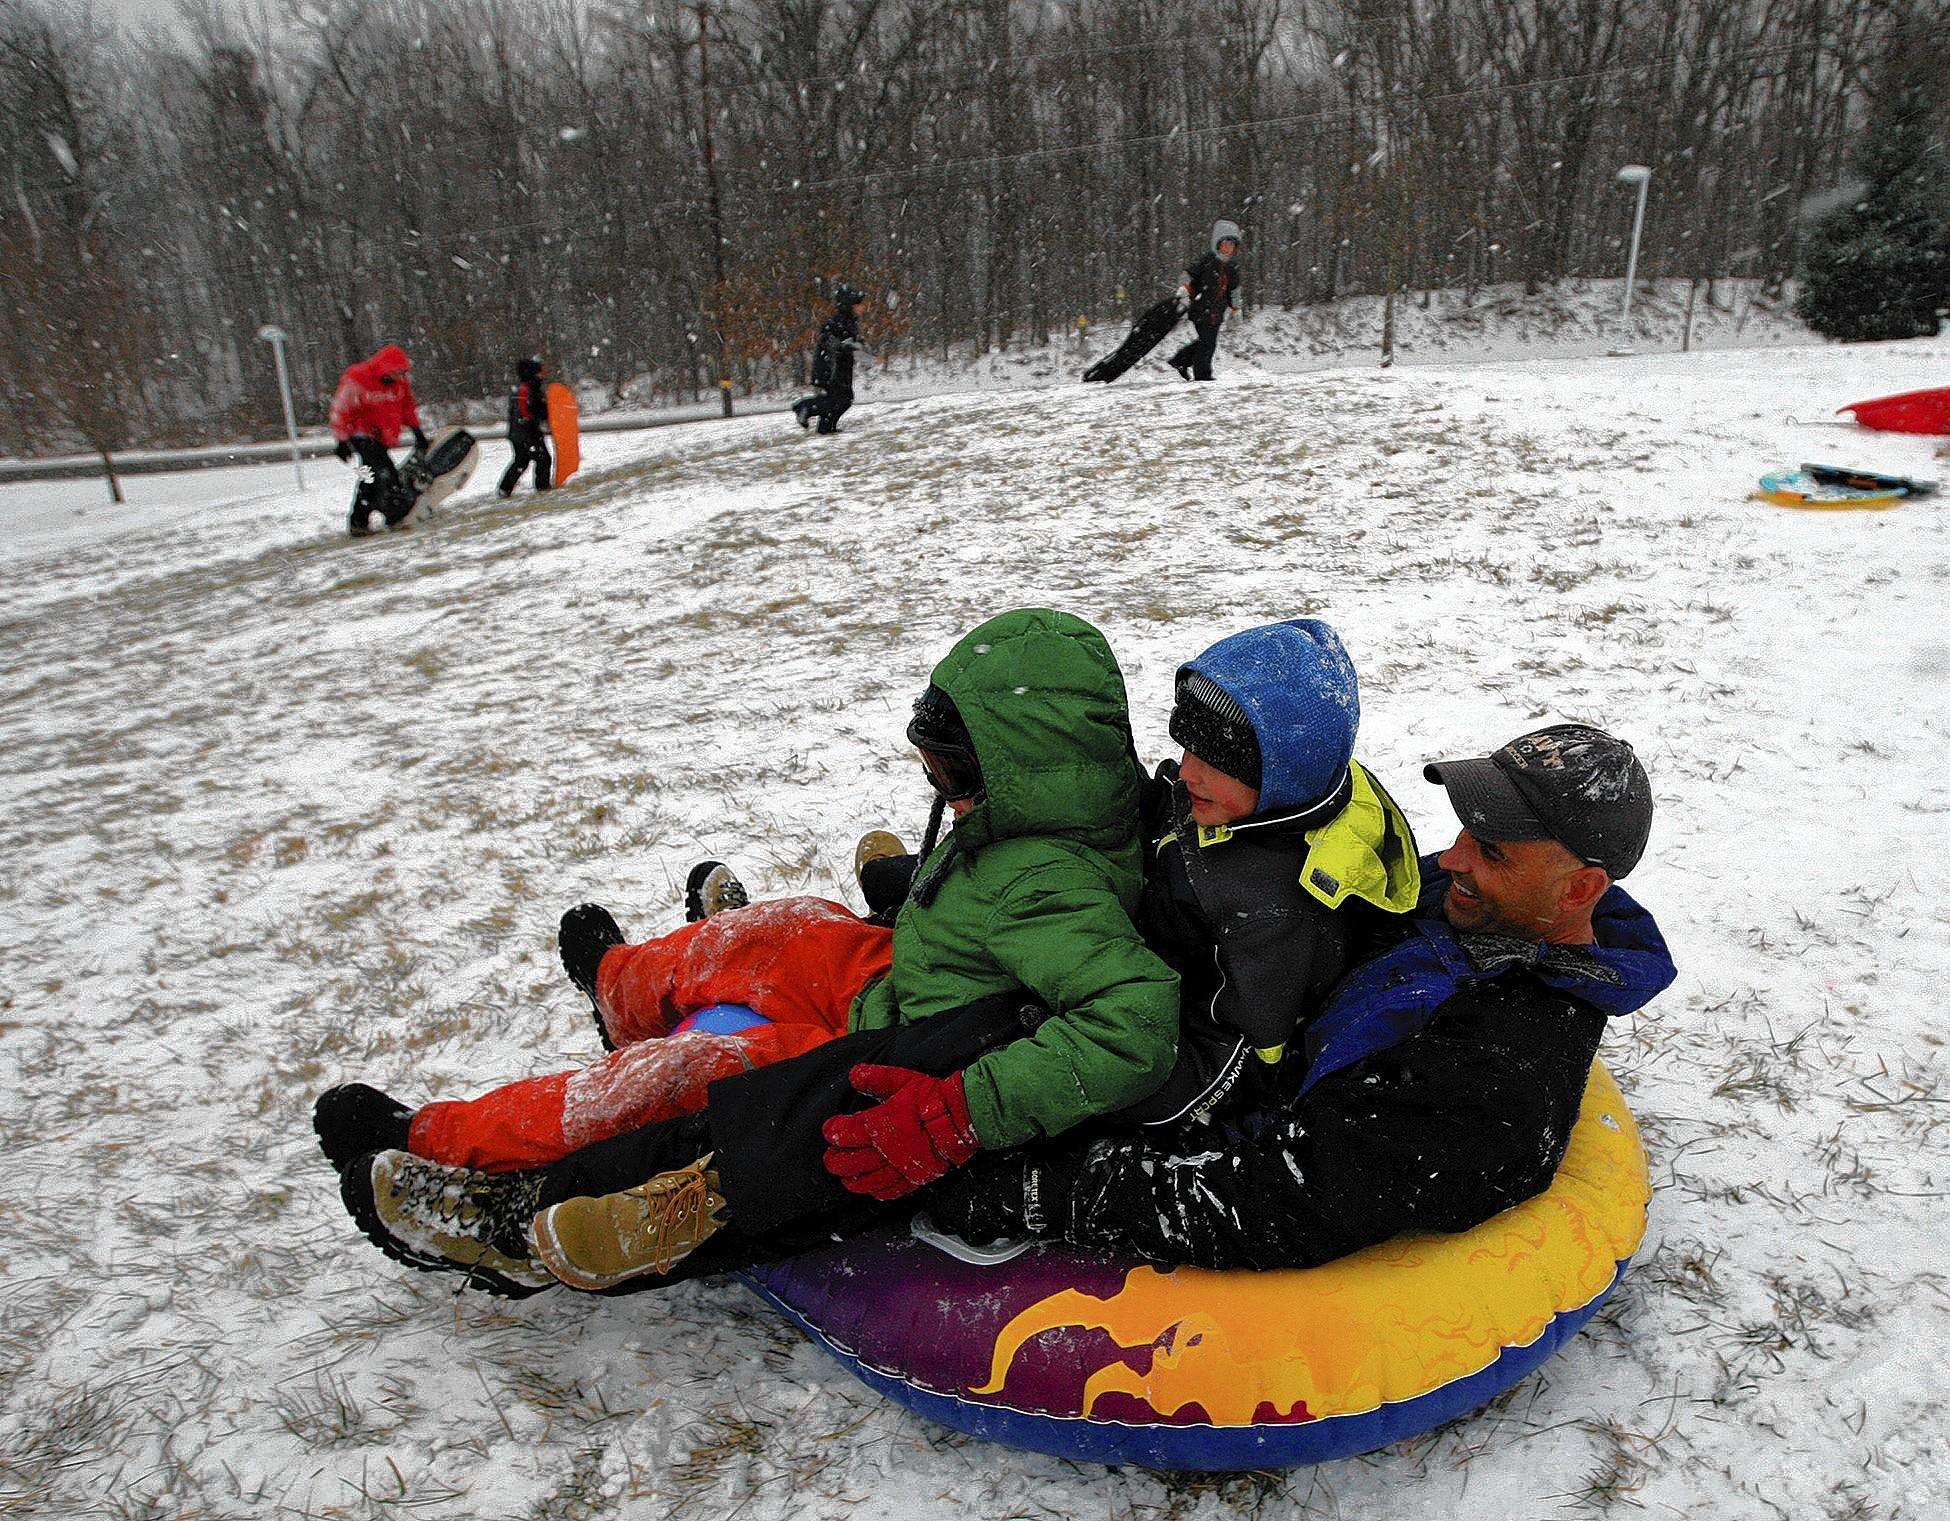 Brad Dunham (right), Dan Reagan (center), 7, and Eli Dunham, 9, all of Center Valley, get ready to take off while sledding at DeSales University.